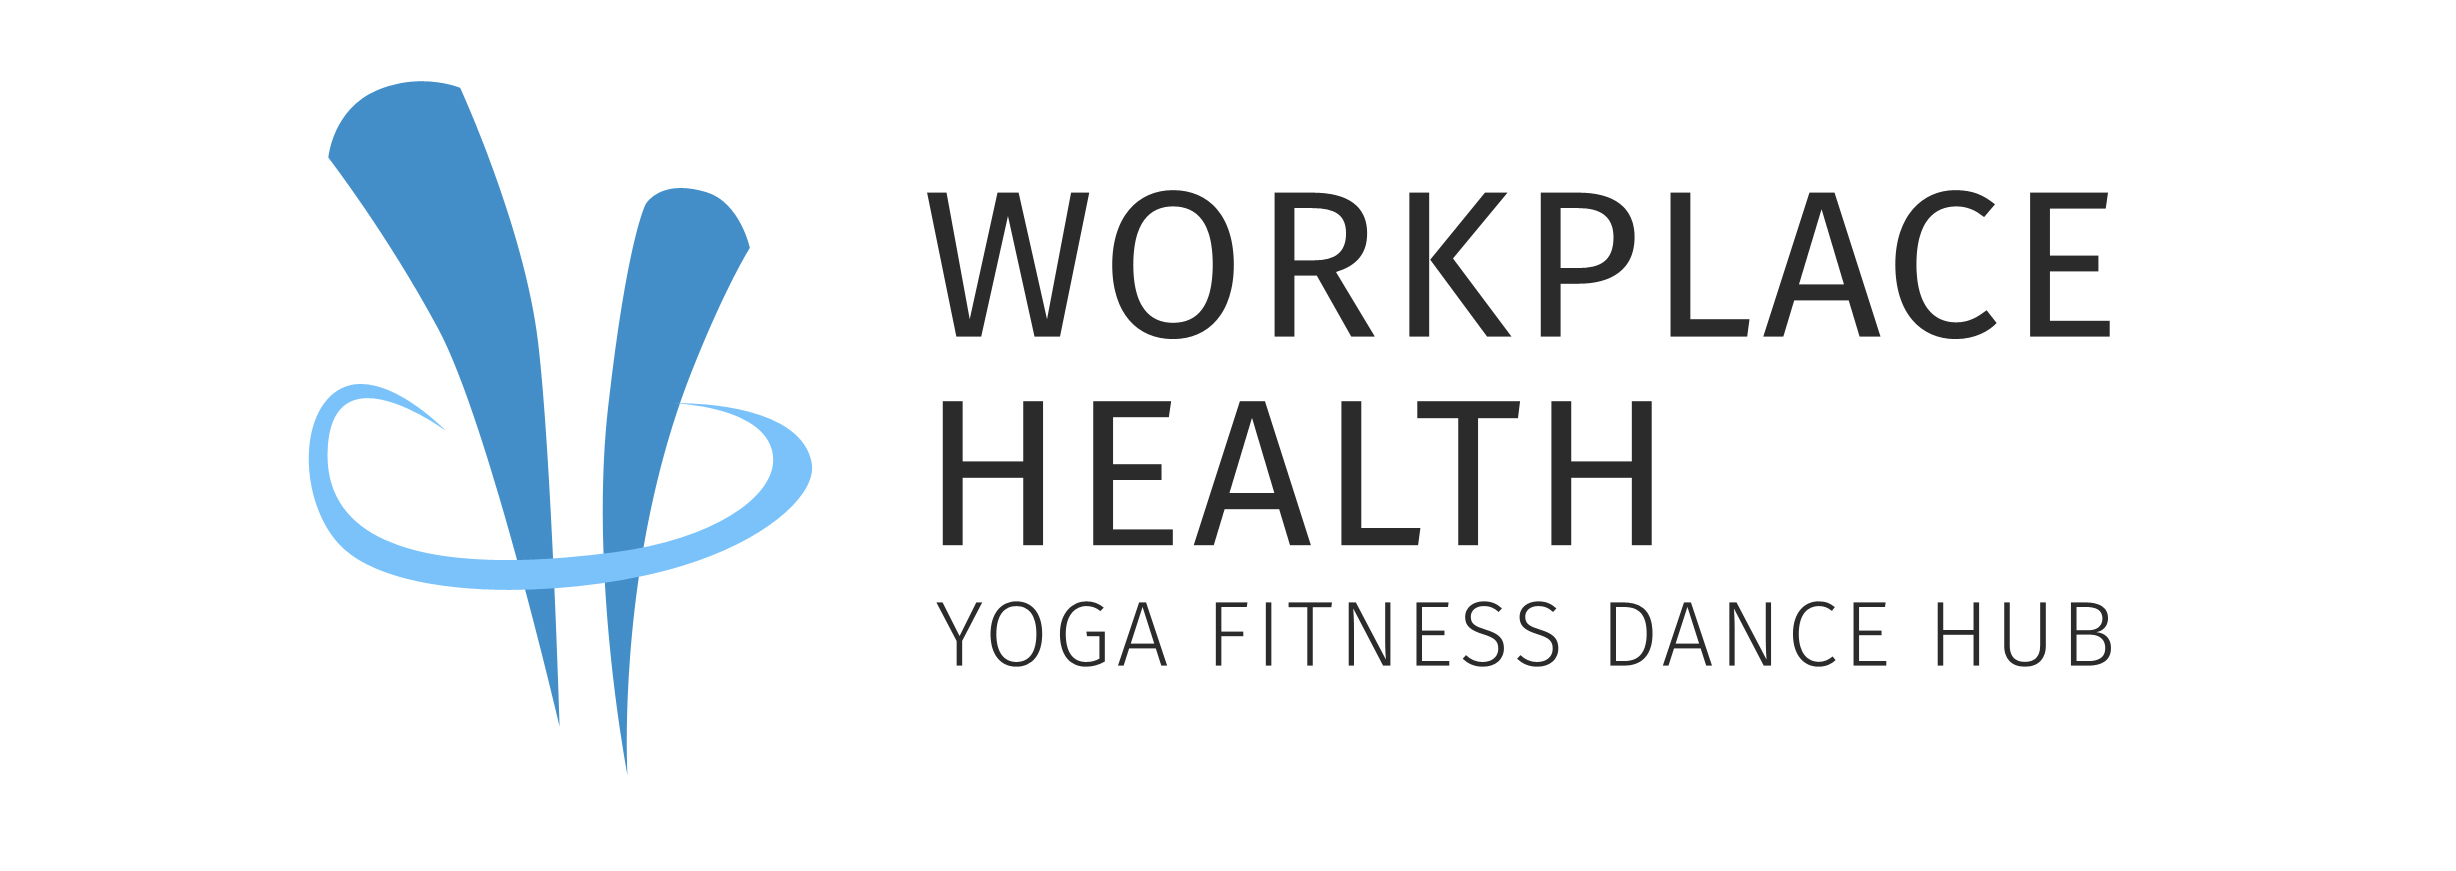 Workplace Health Singapore